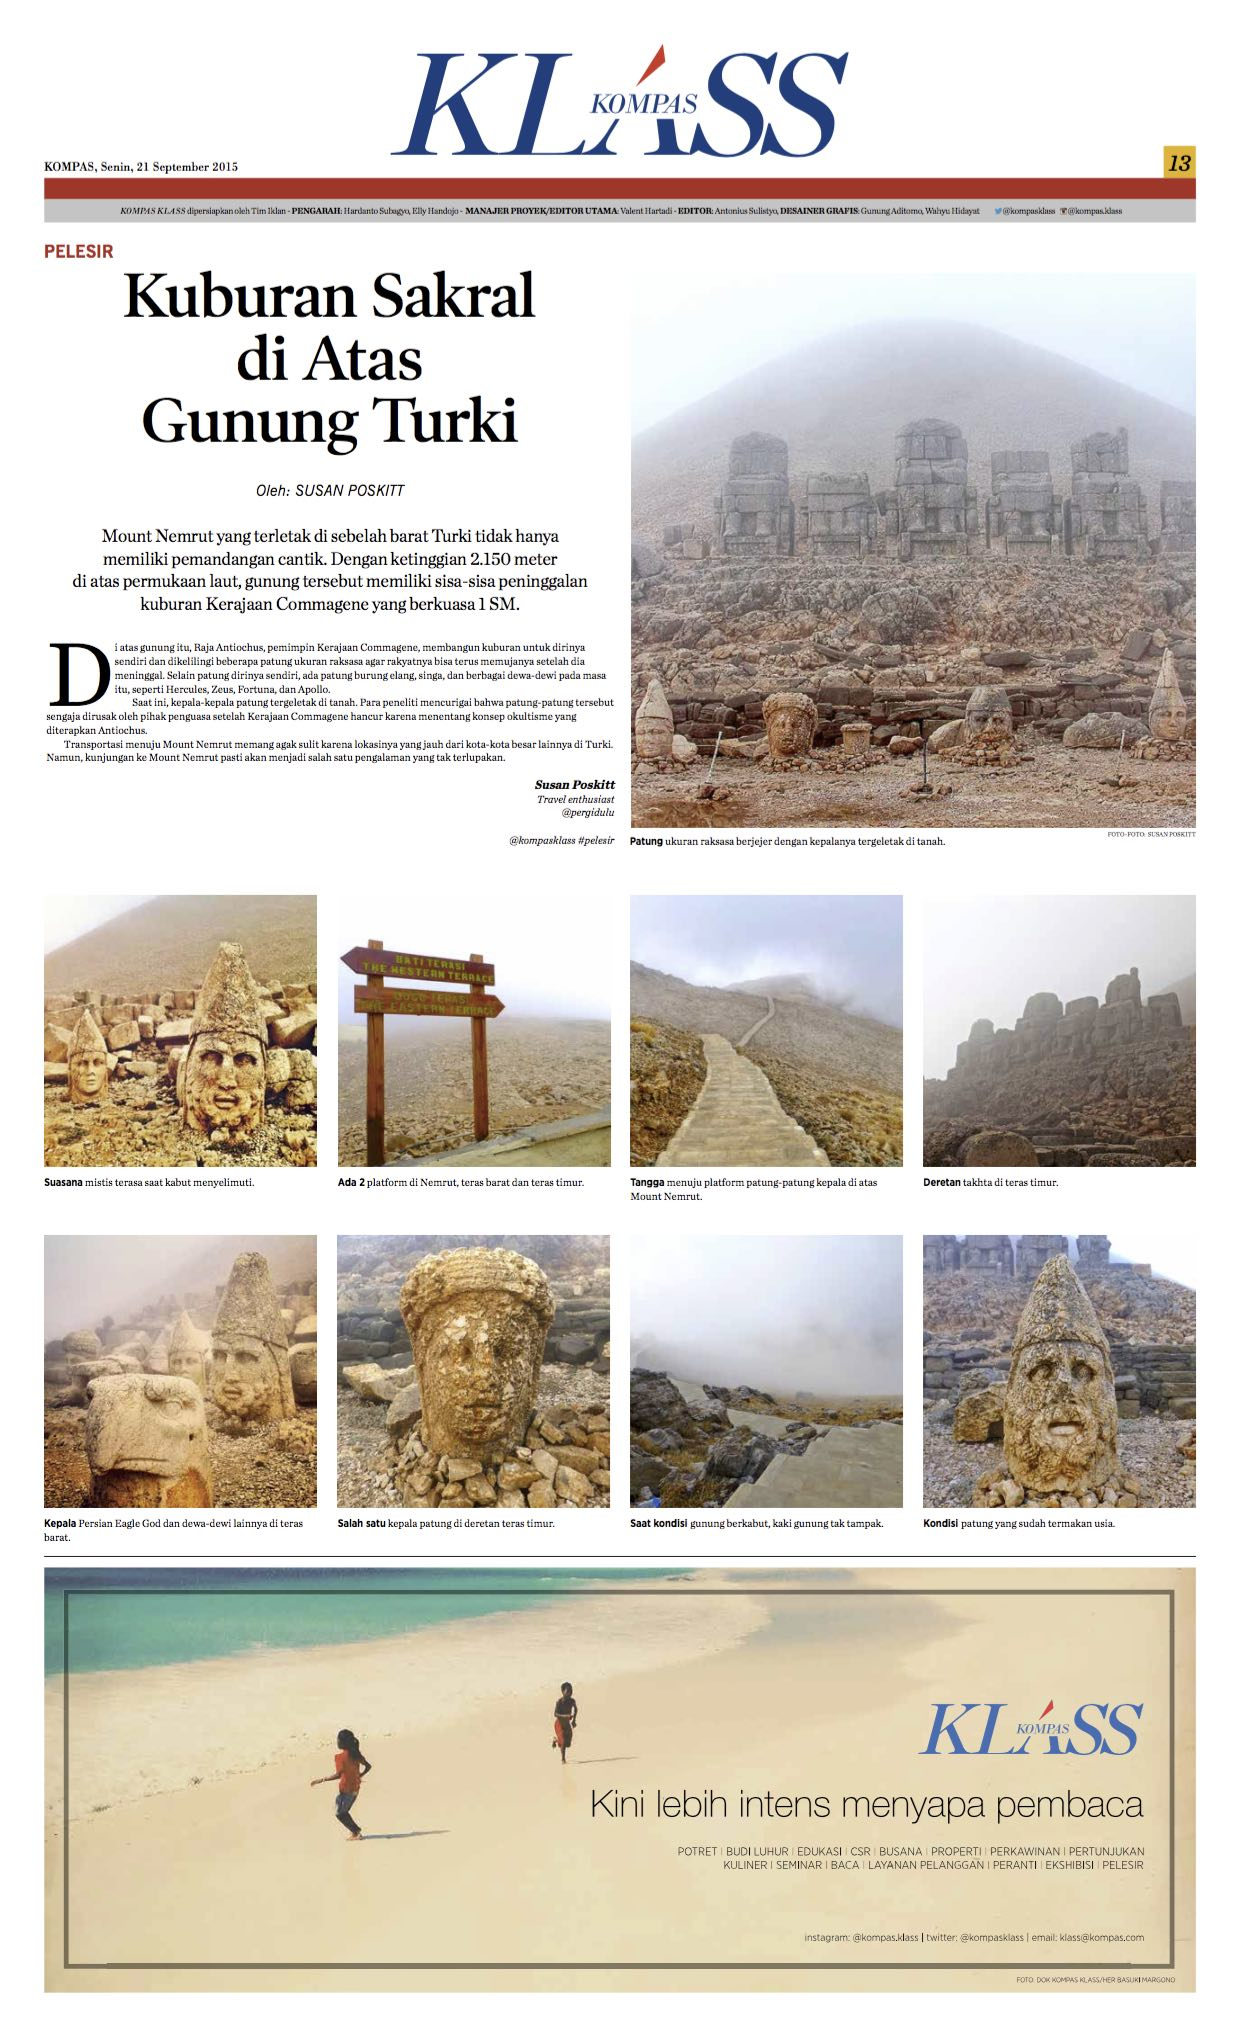 Mount Nemrut - Kompas Klass - September 2015